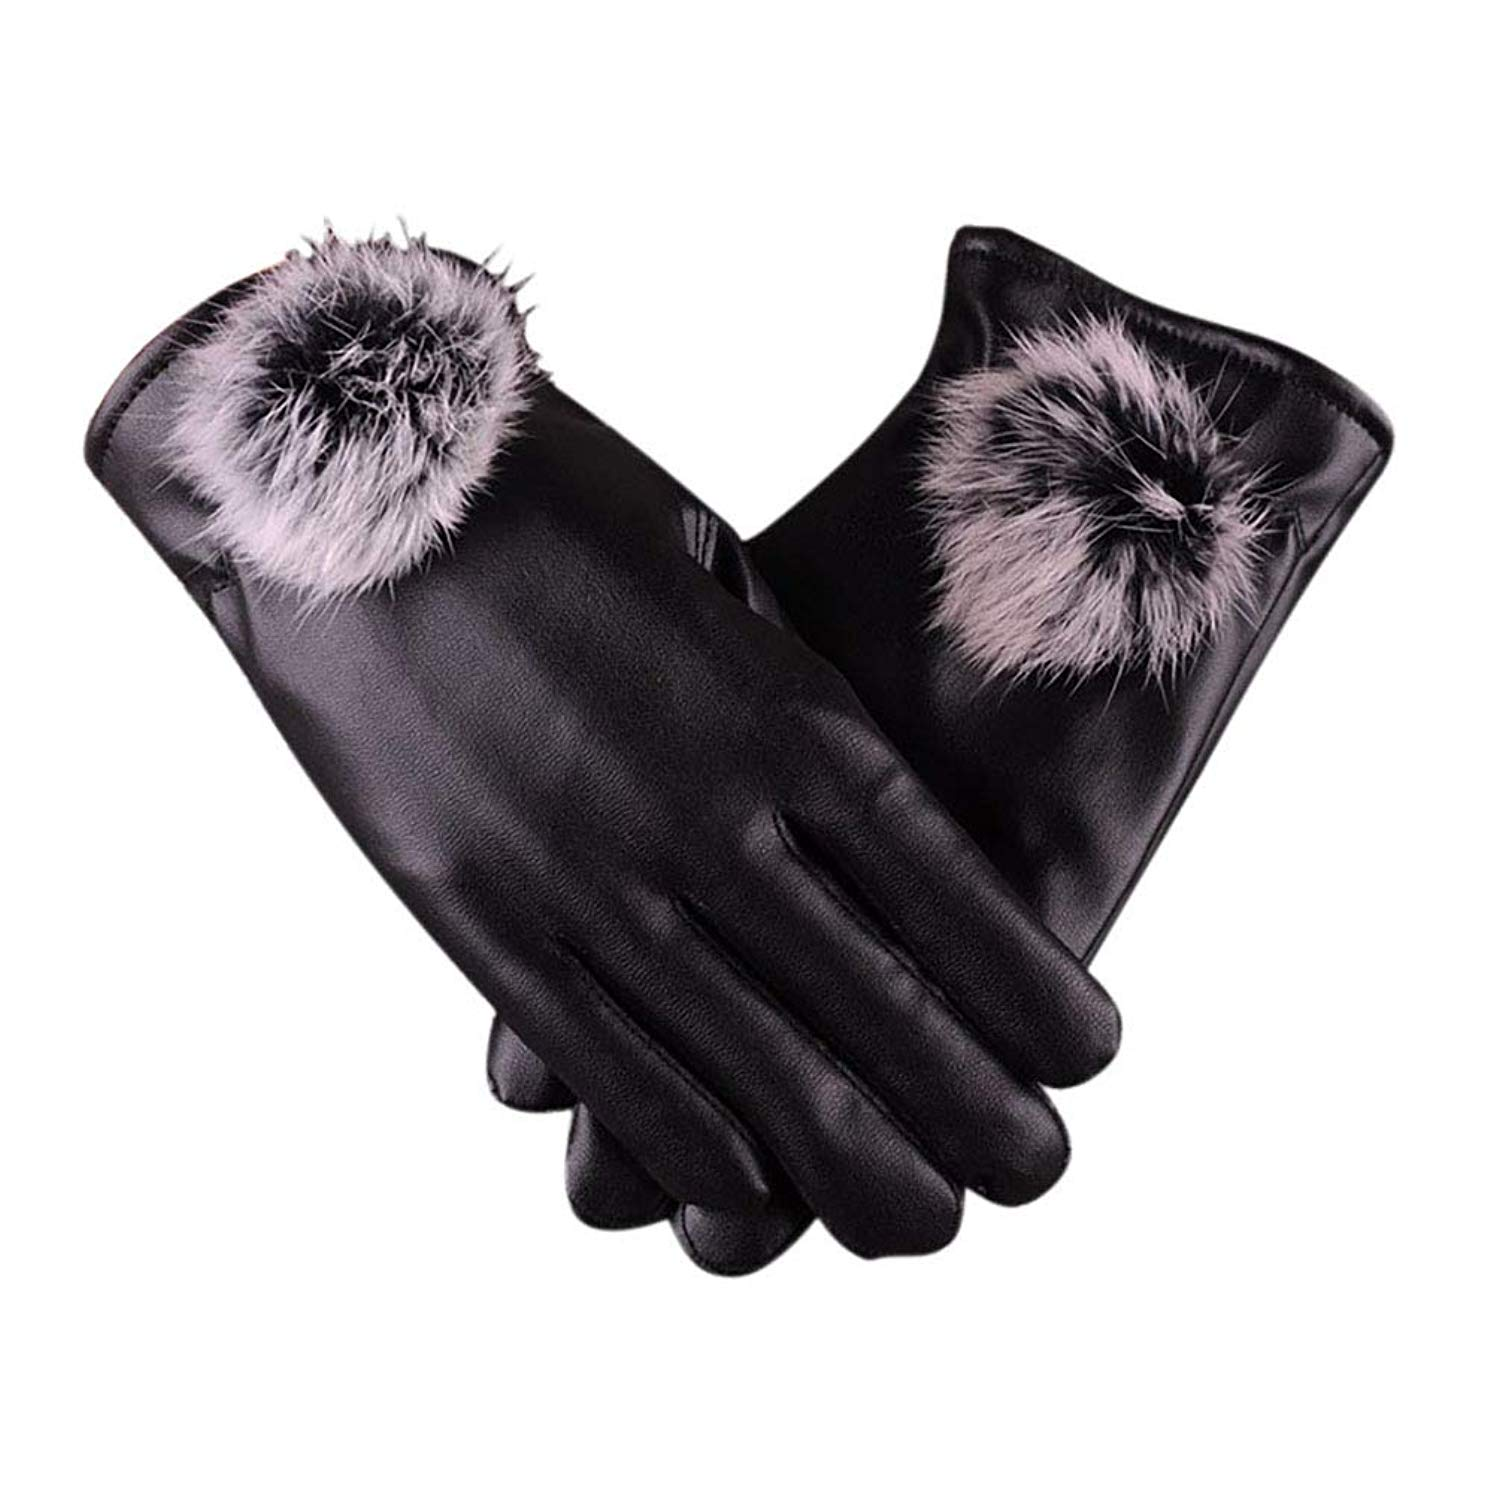 MINGXIN mens genuine nappa lambskin leather gloves outdoors motorcycle cashmere